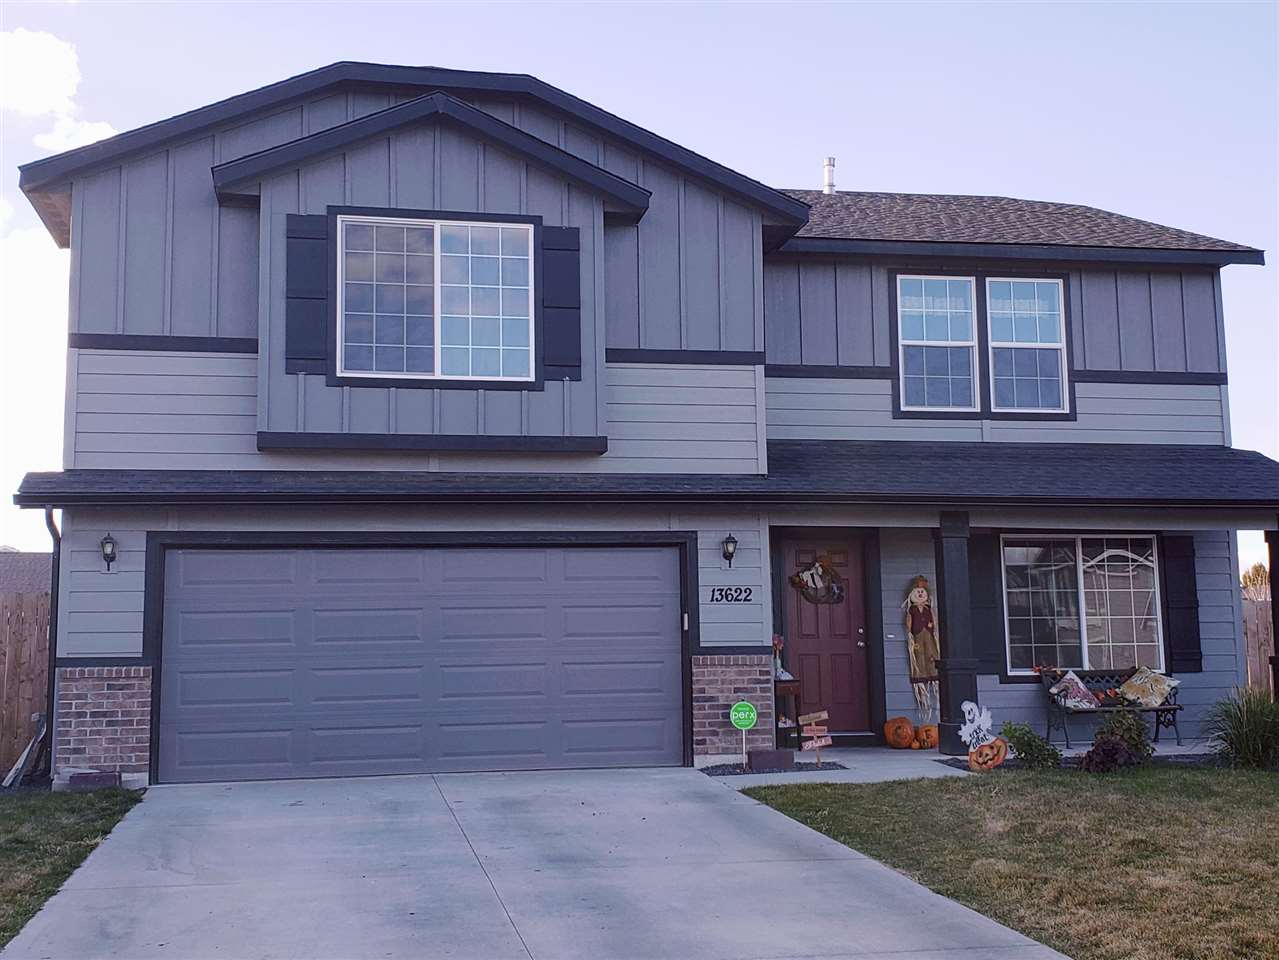 13622 Pompano Dr., Caldwell, Idaho 83607-5474, 3 Bedrooms Bedrooms, ,2.5 BathroomsBathrooms,Residential,For Sale,13622 Pompano Dr.,98711352